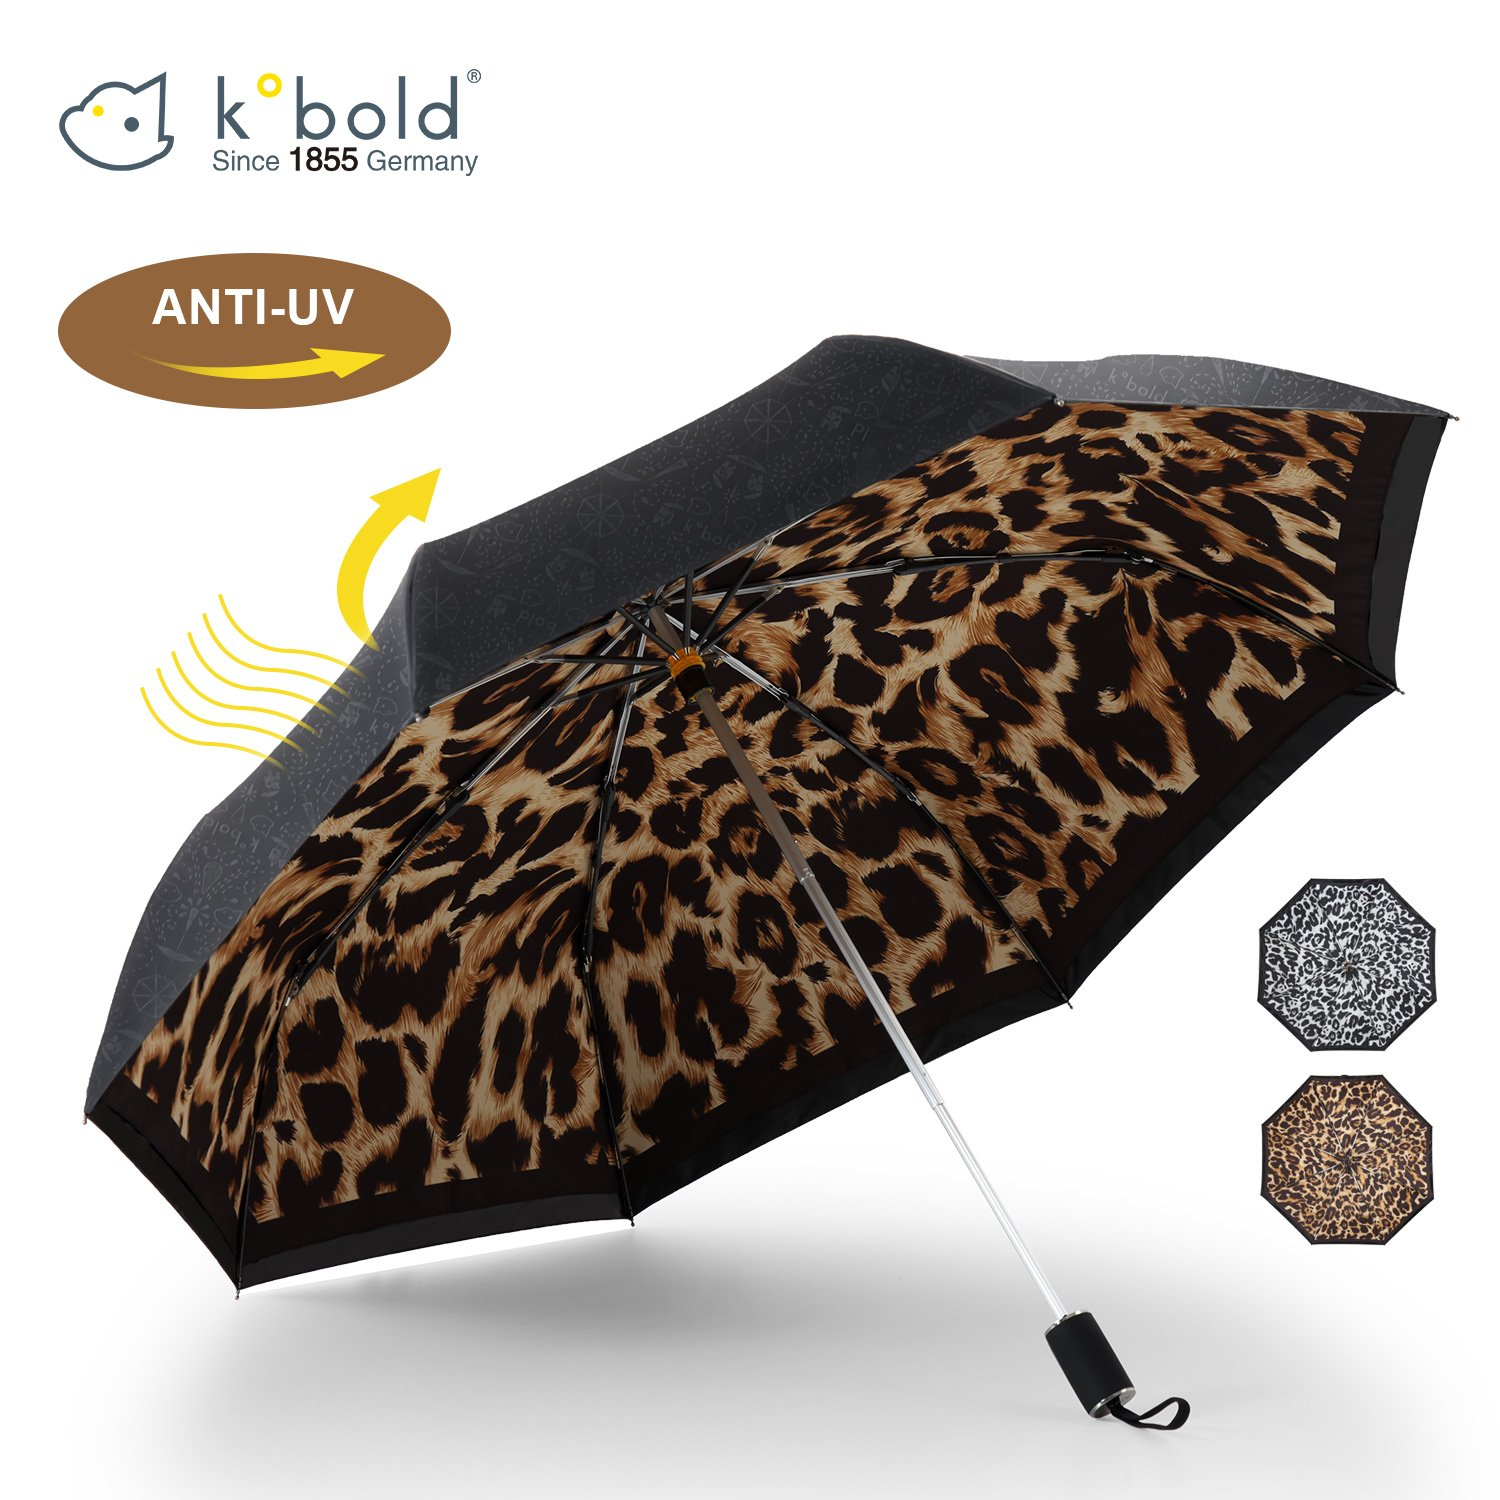 Kobold Tavel Umbrella Compact Mini Lightweight Travel Umbrellas for Women Double Layers Canopy for Rain Sun Protection Comfortable Handle Leopard Print by Kobold (Image #1)